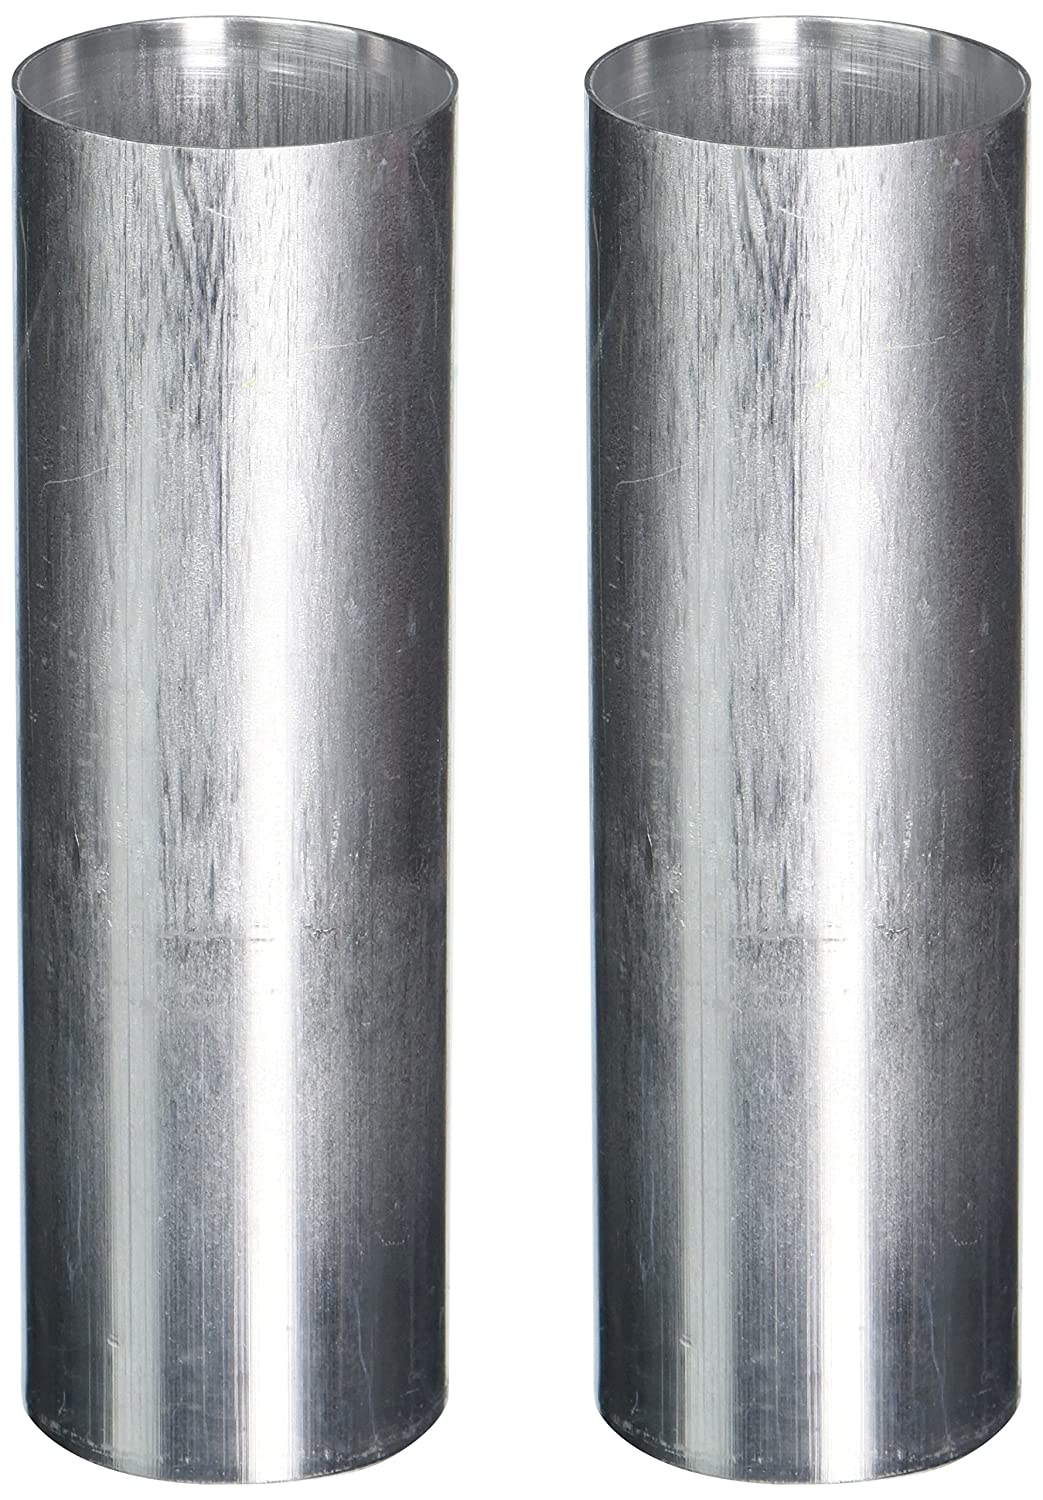 Candlewic 2Pk of 2 X 6.5 Inch Round Aluminum One Piece Candle Molds